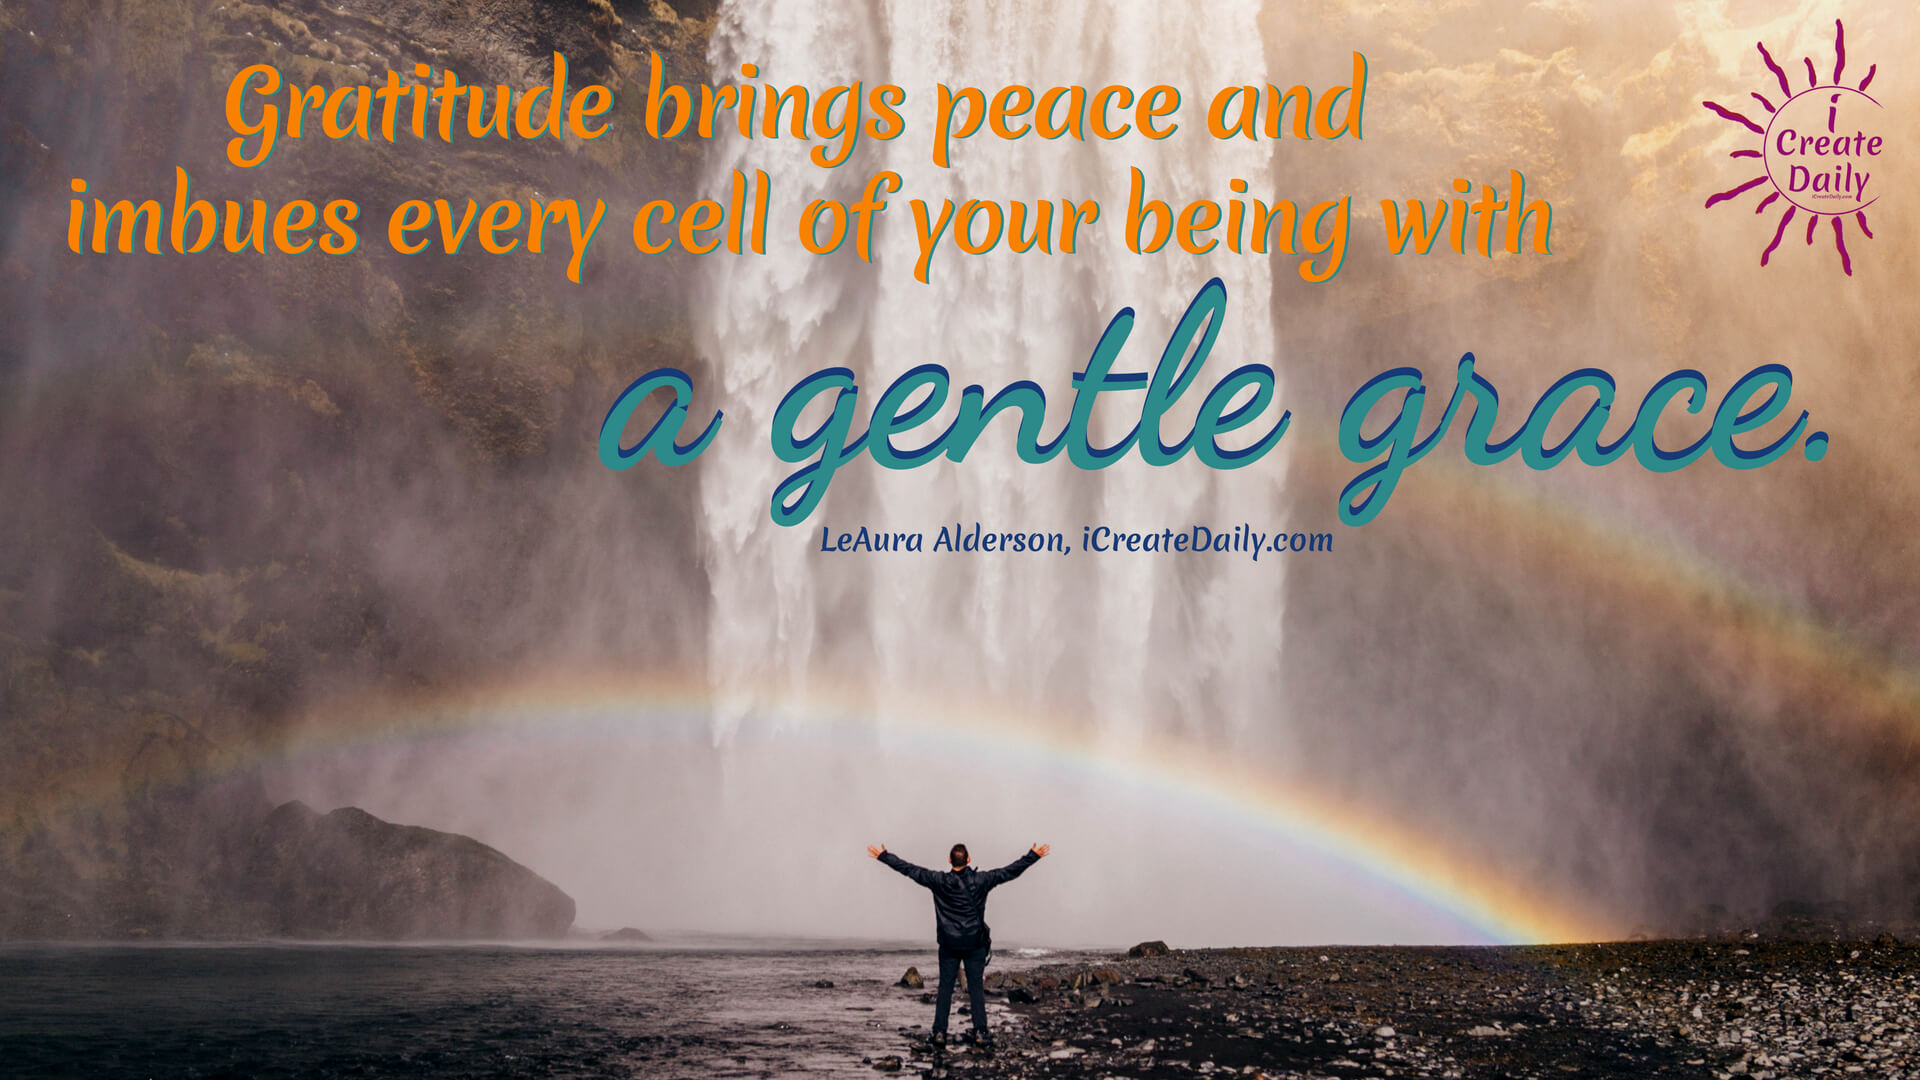 Gratitude brings peace and imbues every cell of your being with a gentle grace. #AttitudeOfGratitude #PositiveAttitude #PositiveQuotes